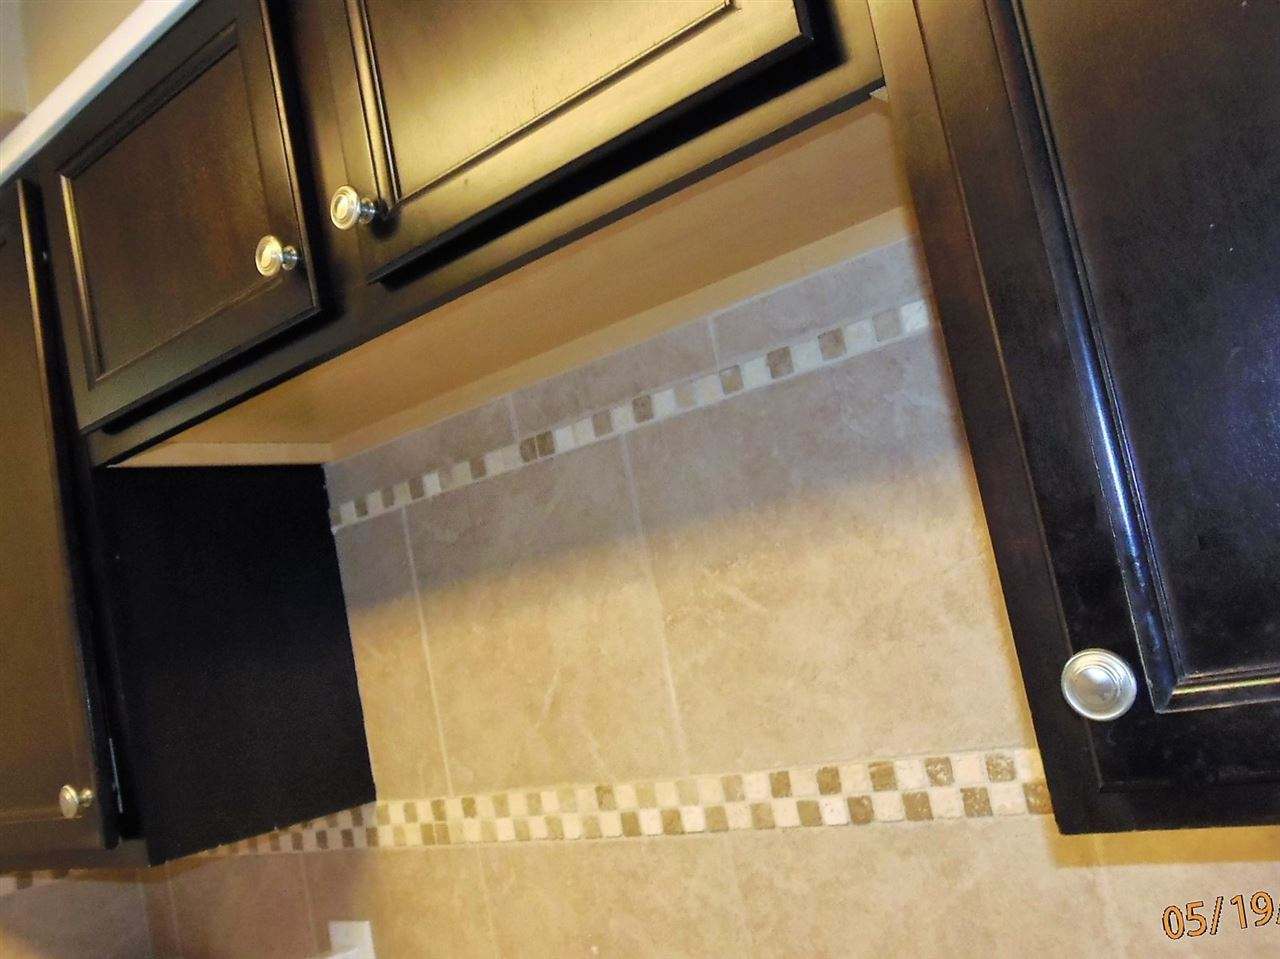 Kitchen upgrades including, Granite counter tops, Cupboards, backsplash, Tile flooring, appliances, paint.